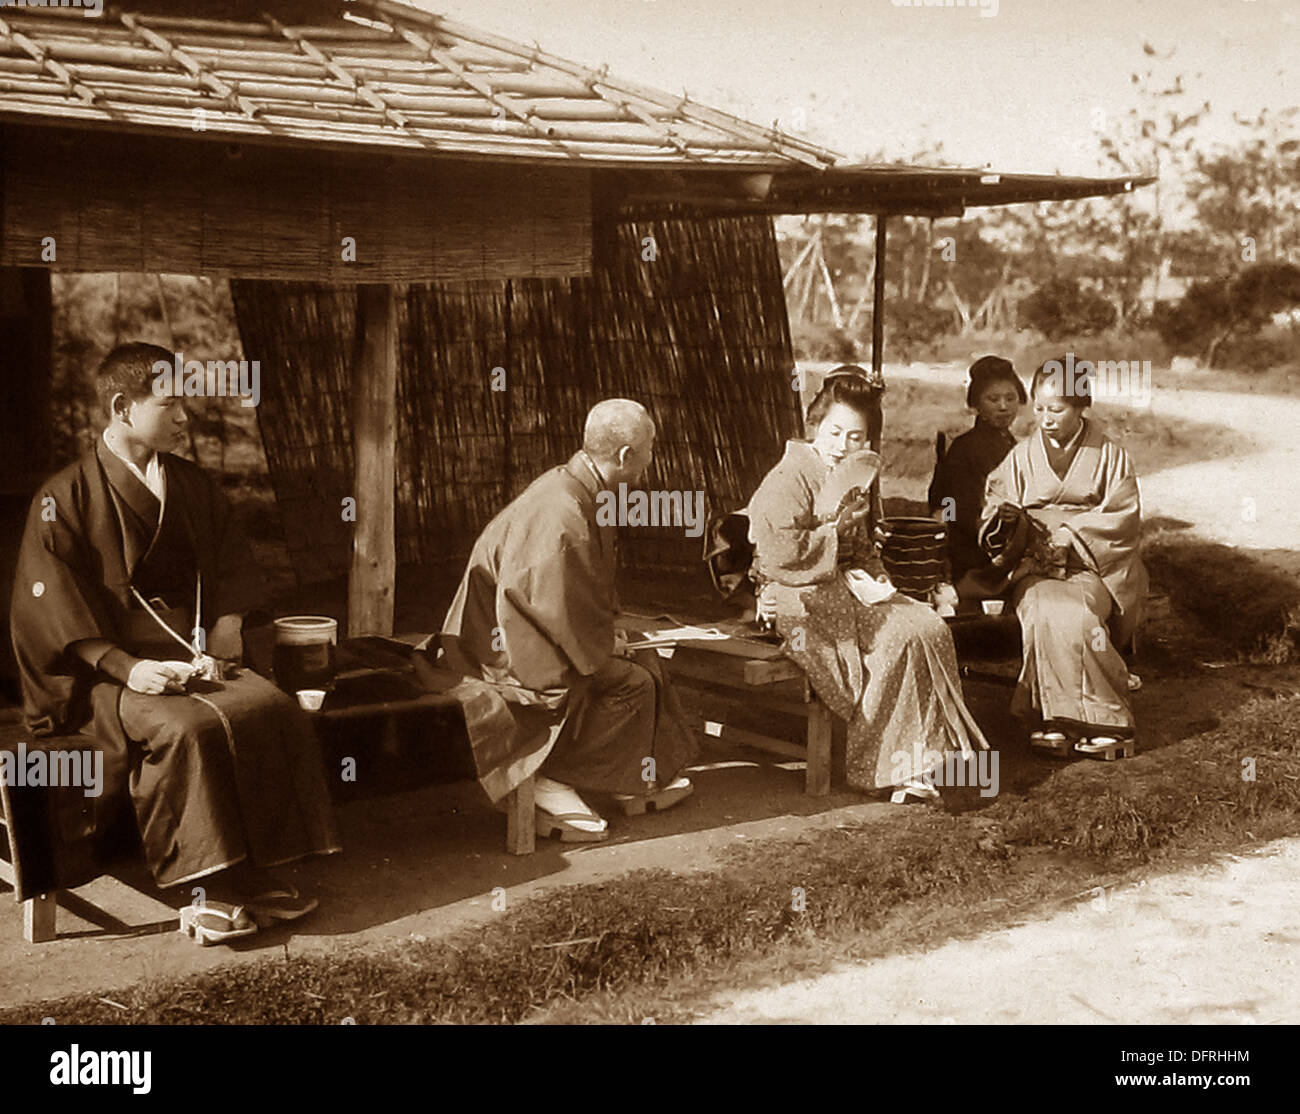 Japan - 'Mutual Seeing' early 1900s - Stock Image